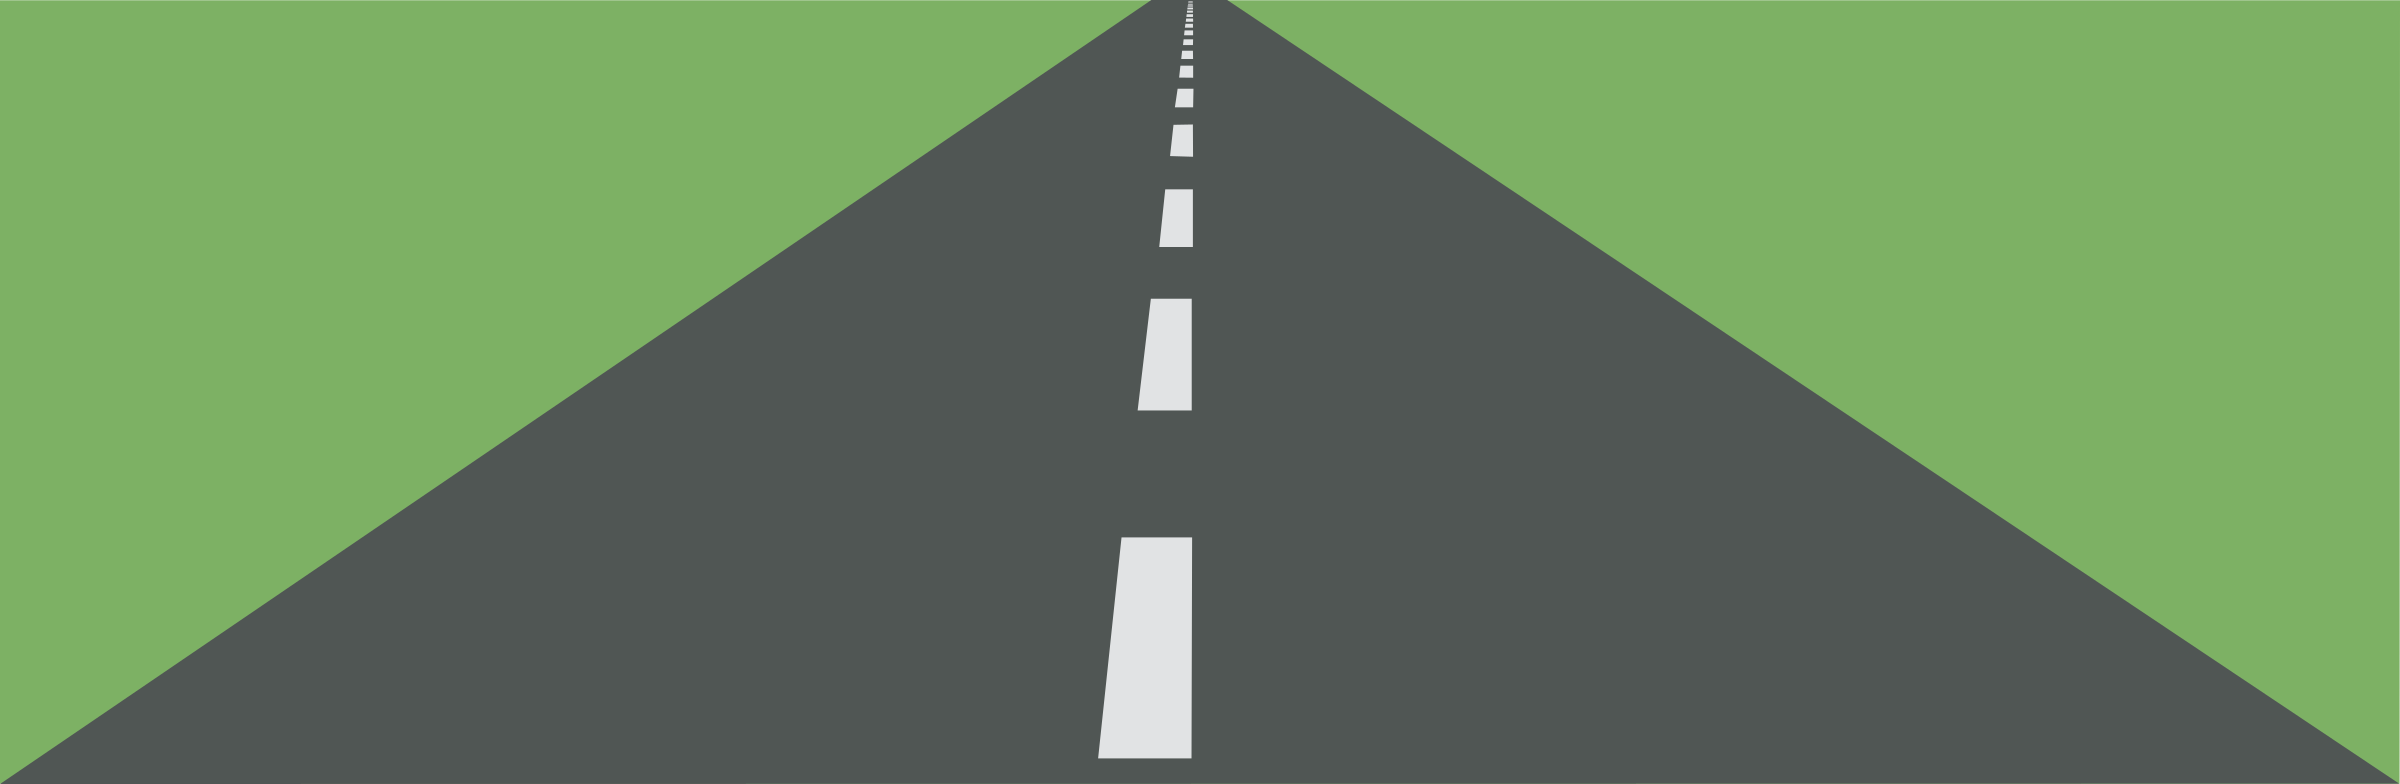 Road clipart horizontal road #10